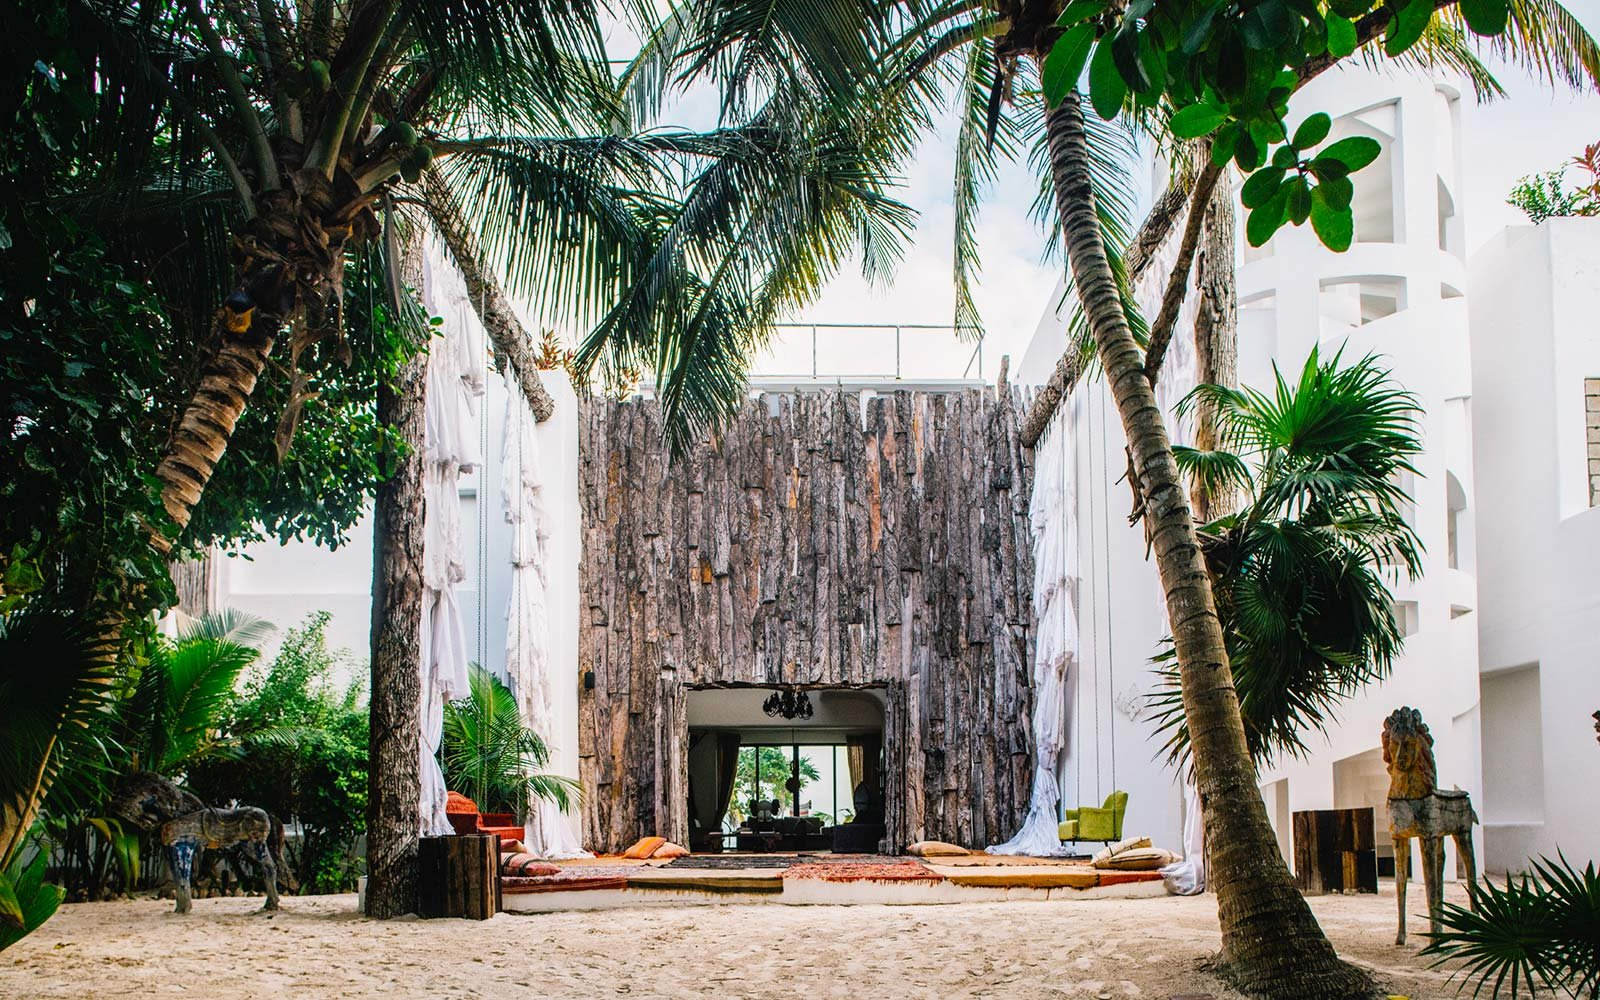 Casa Malca Tulum Mexico Hotel Pablo Escobar Estate Entrance Decor Beach